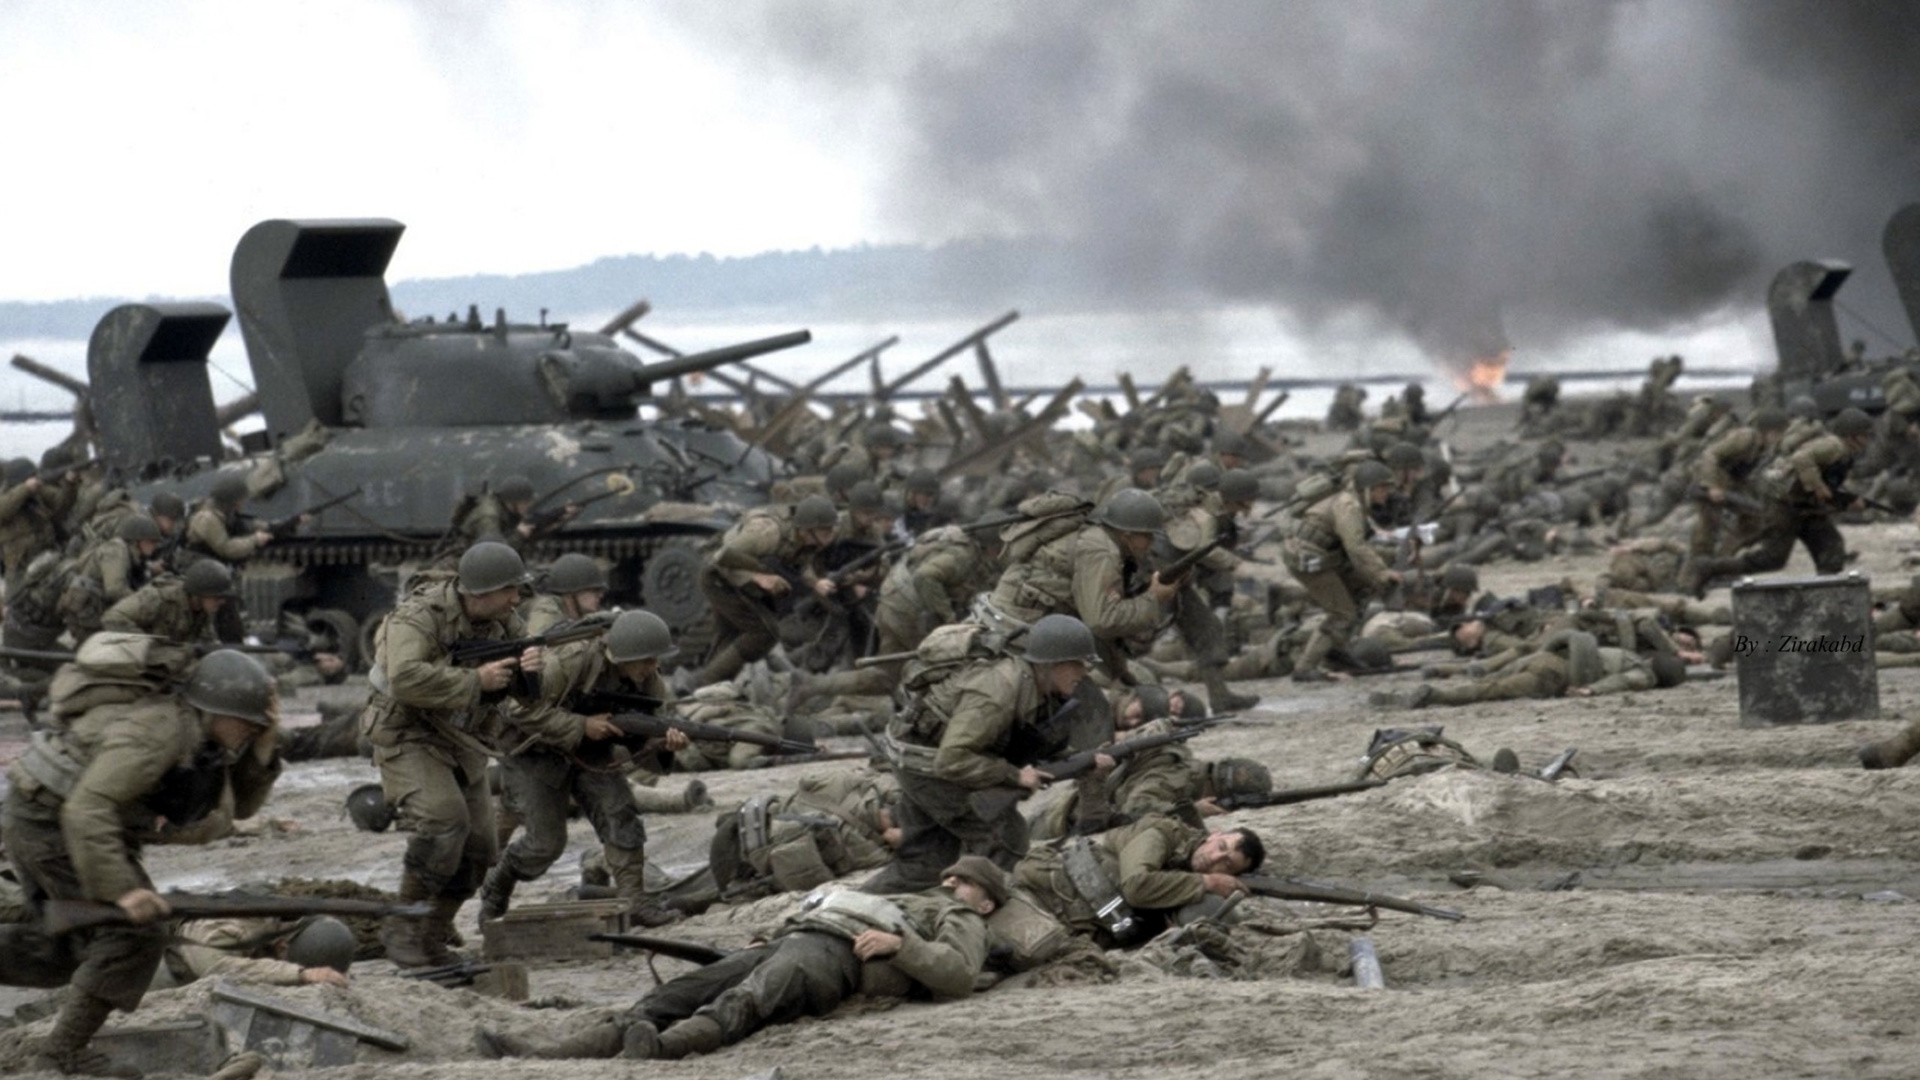 Download Wallpaper Assault Saving Private Ryan 1920x1080 The